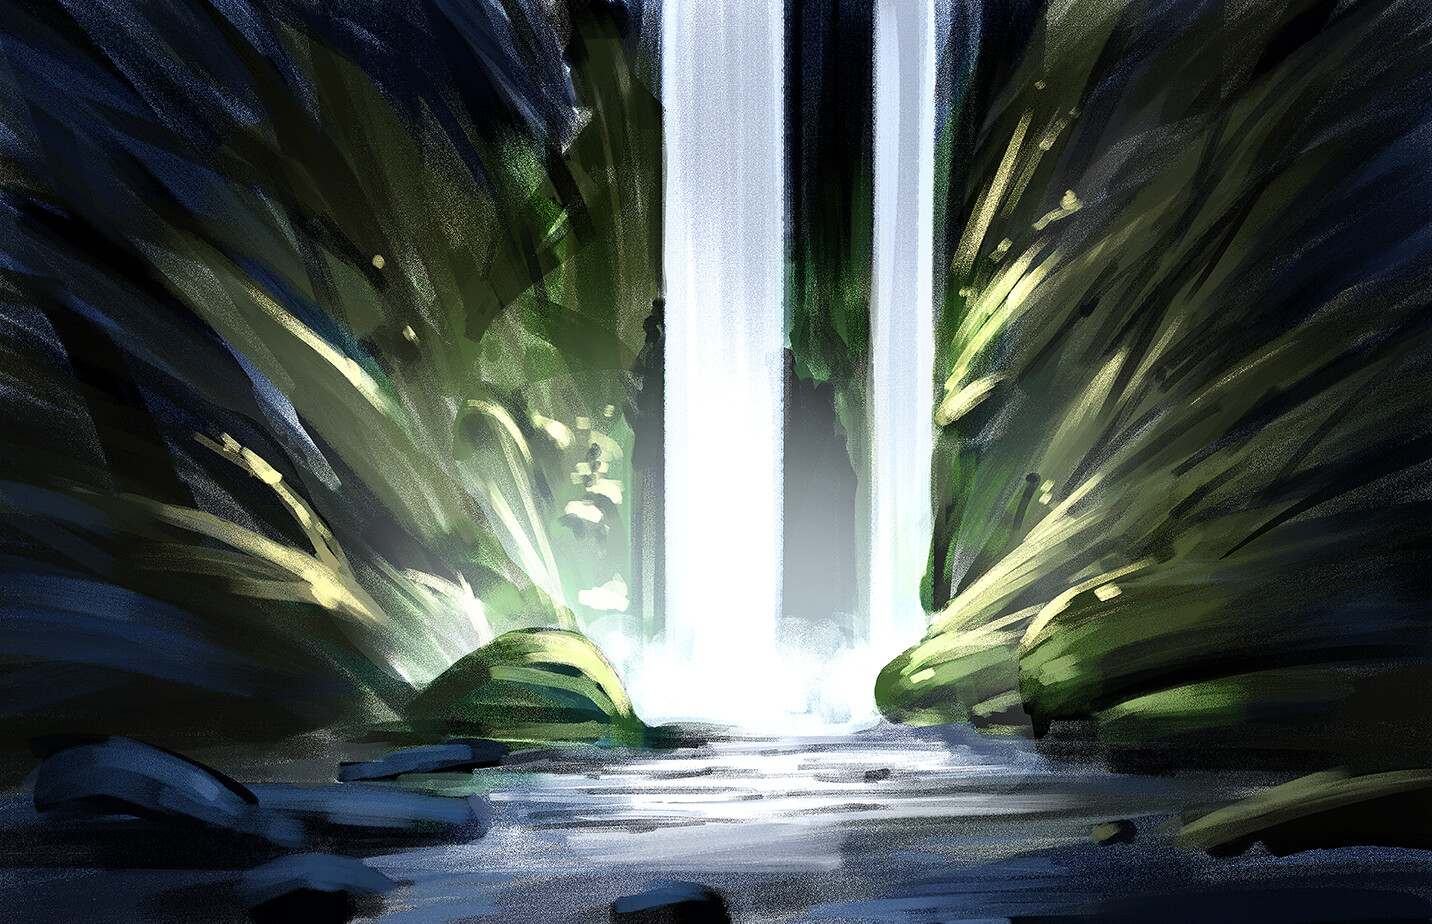 the 30 minute speed paint